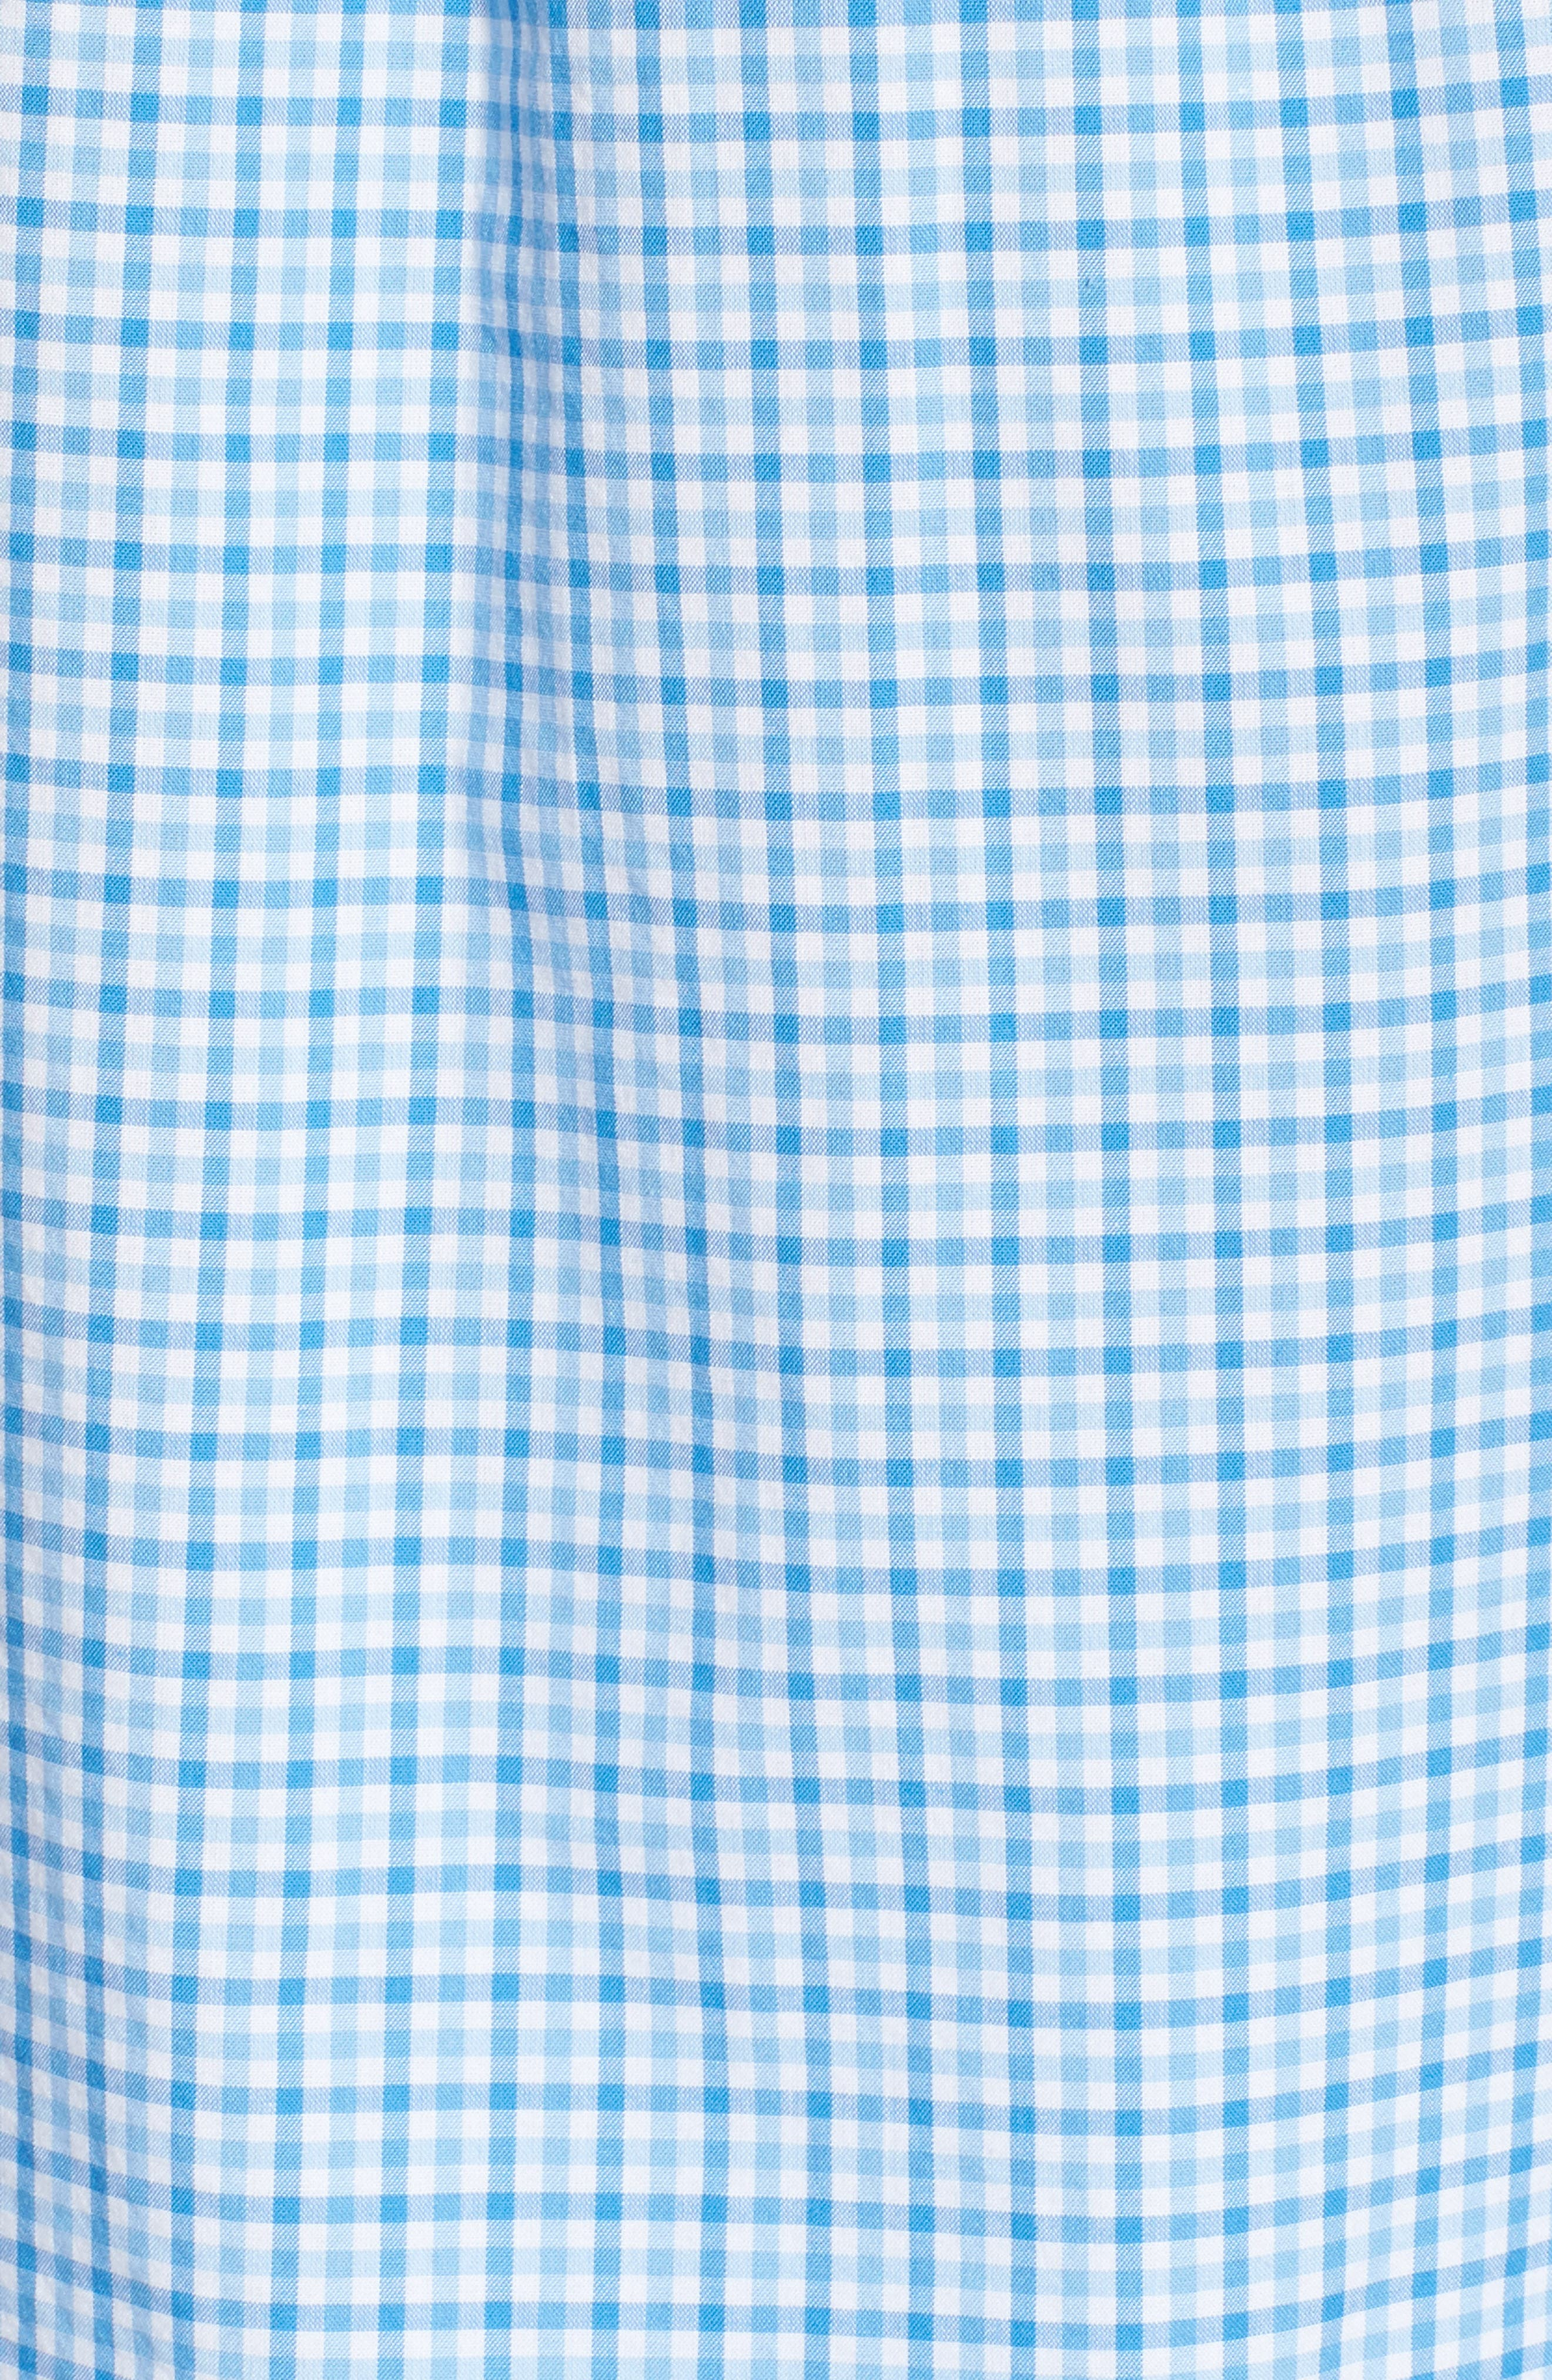 Tipsy Turtle Check Slim Fit Sport Shirt,                             Alternate thumbnail 5, color,                             Harbor Cay